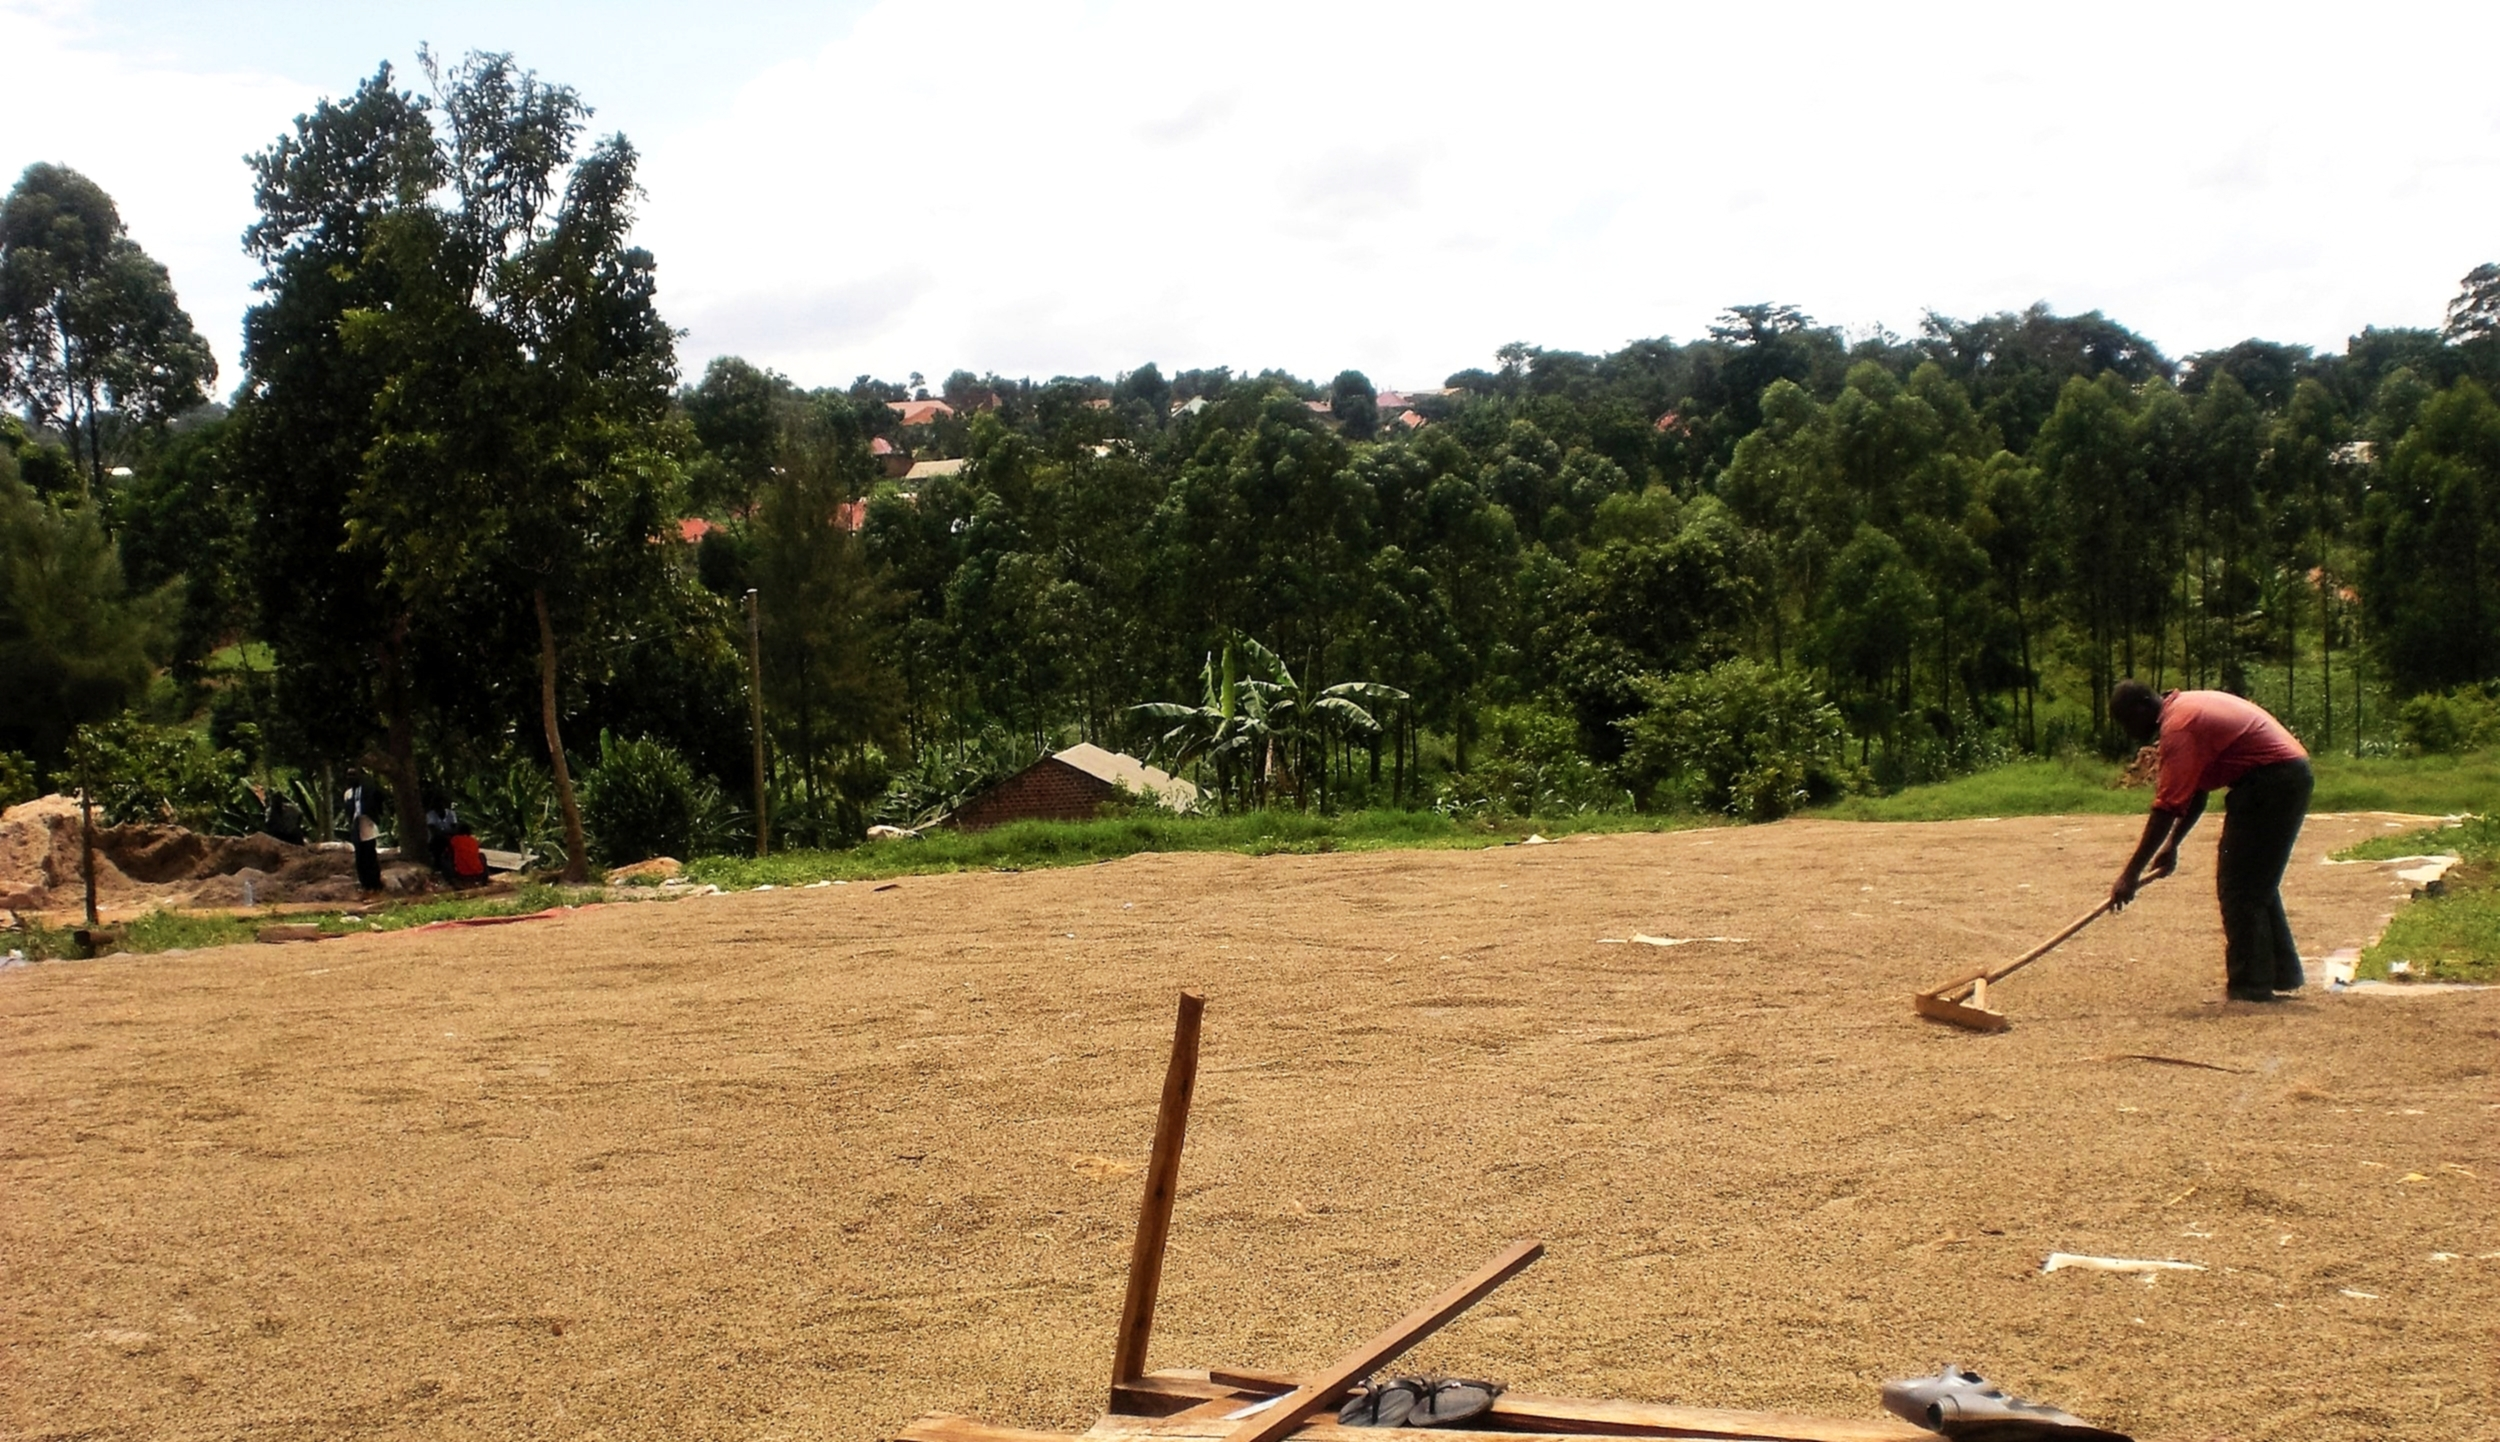 We strive to provide the best single origin coffee directly from our farming co-ops in Uganda. -